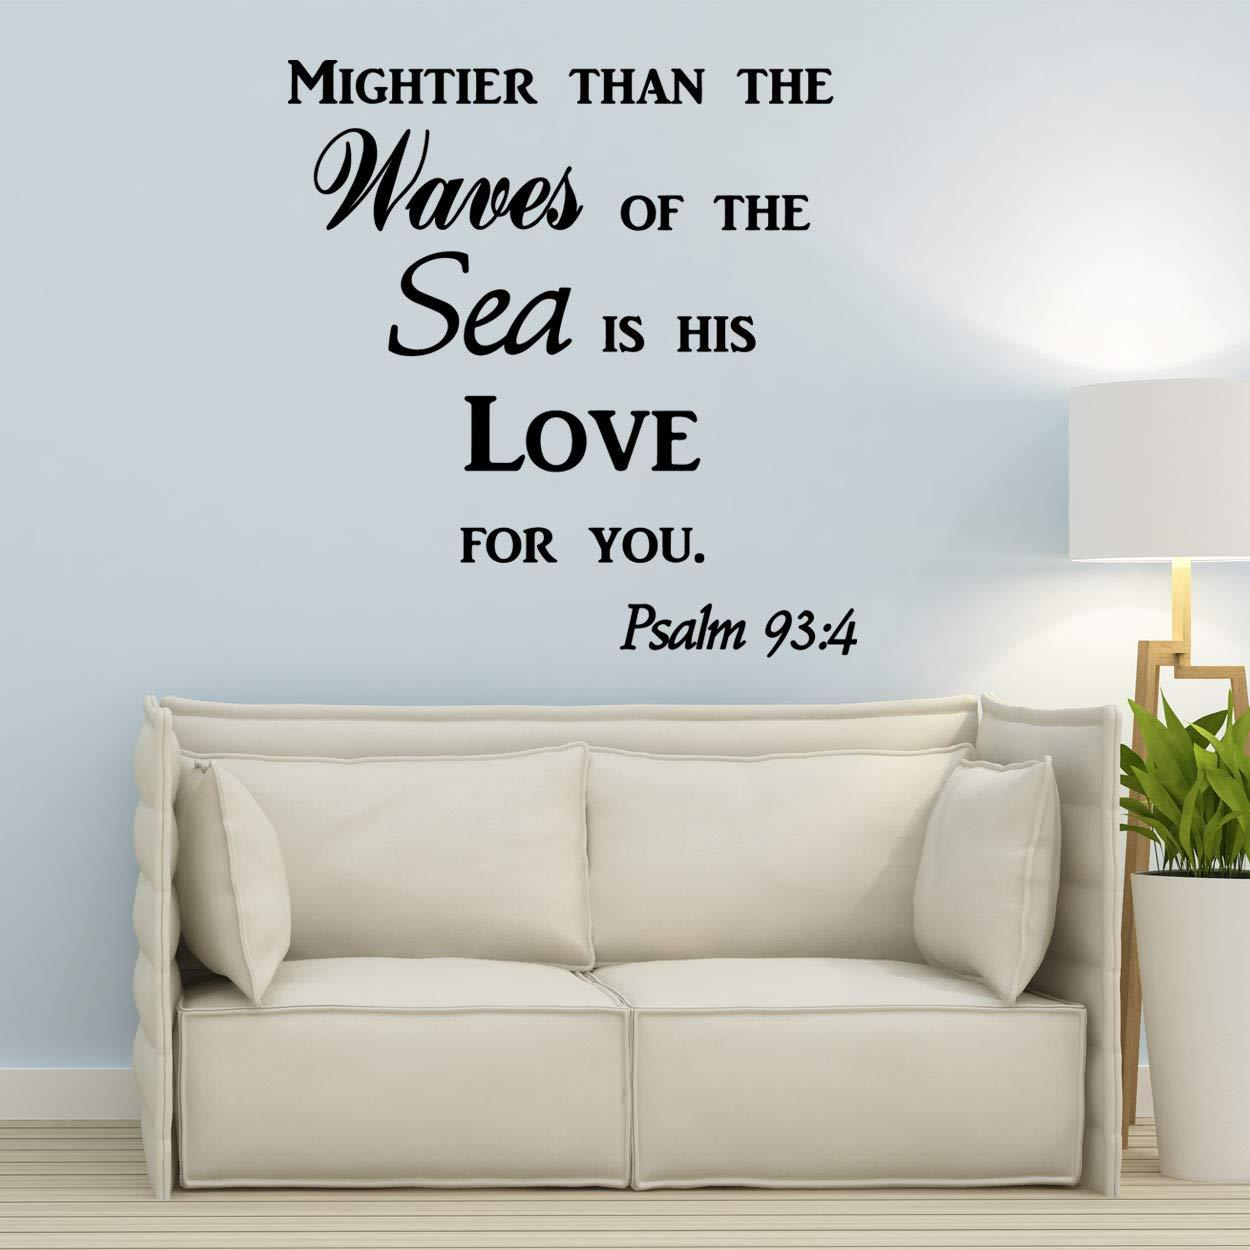 VWAQ Mightier Than The Waves of The Sea is His Love for You Psalm 93 4 Quotes Wall Decal